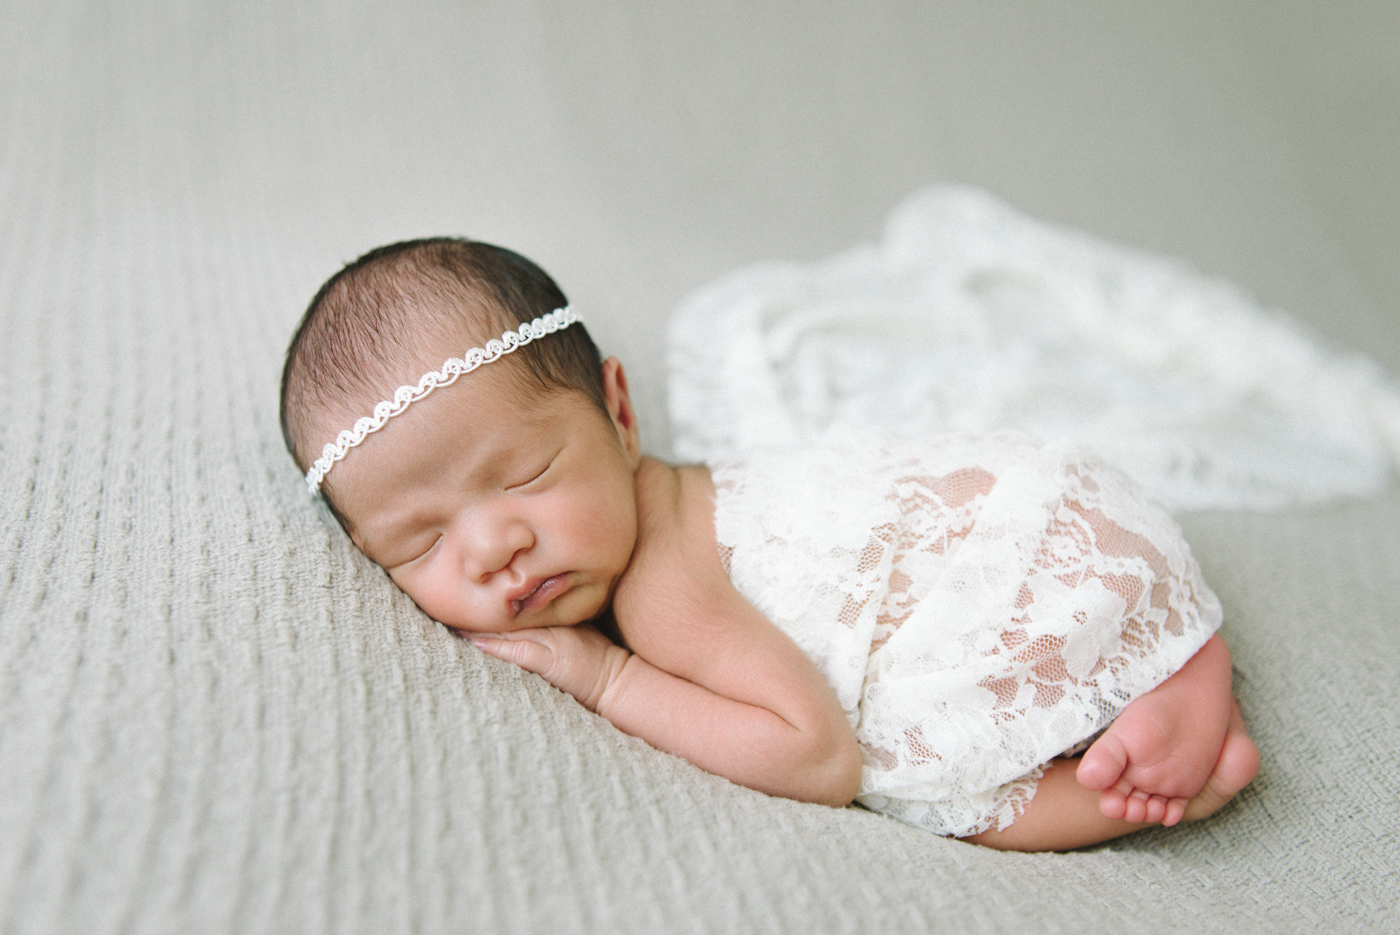 Newborn-Photographer-Portland-Oregon-Portrait-Sleeping-Baby-Girl-White-Lace-Headband-Natural-light-Shelley-Marie-Photography-3